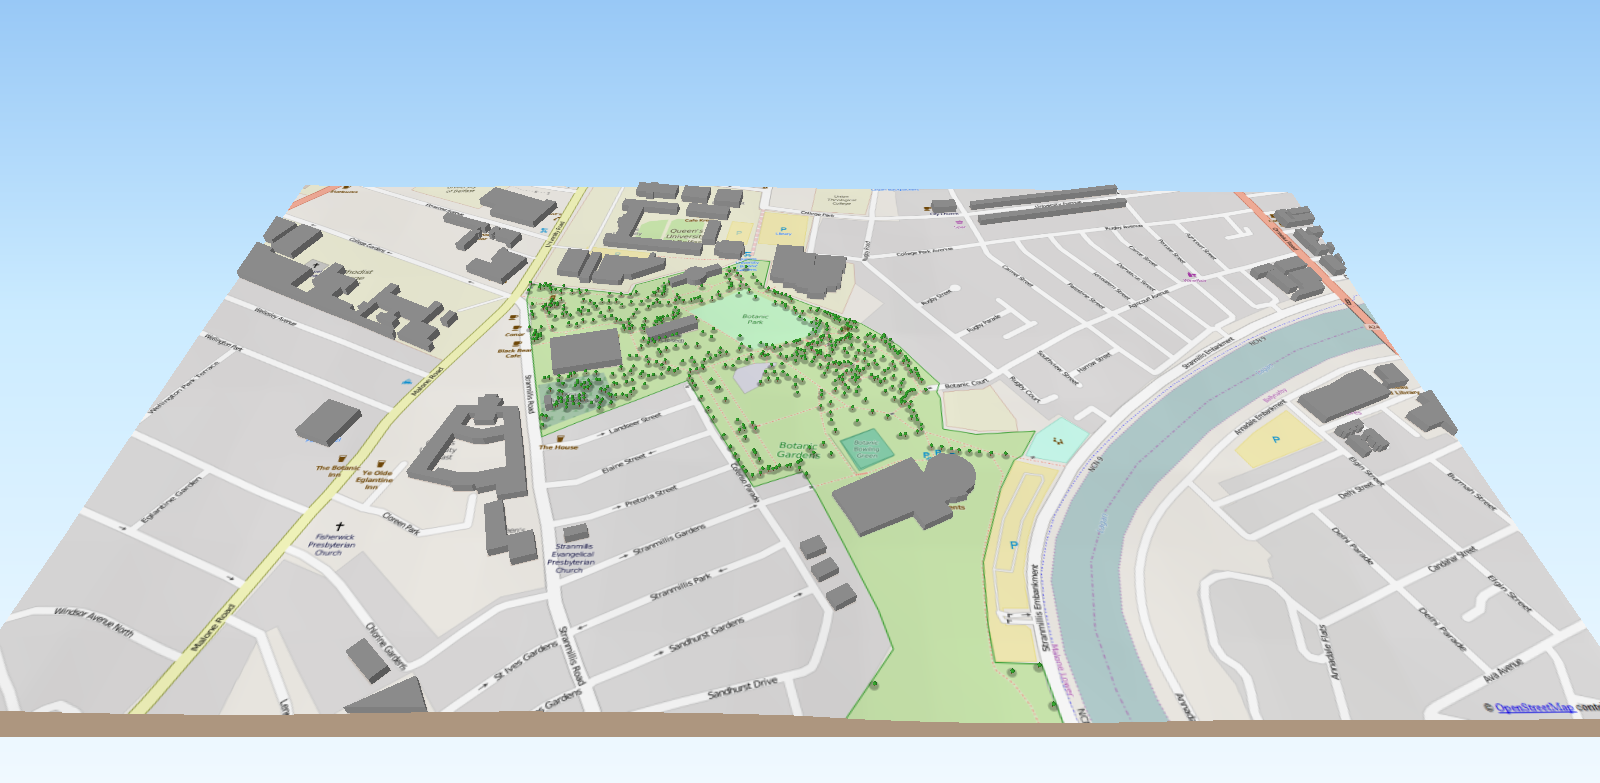 Image created from open spatial data and methods by Lorraine Barry, GIS, QUB